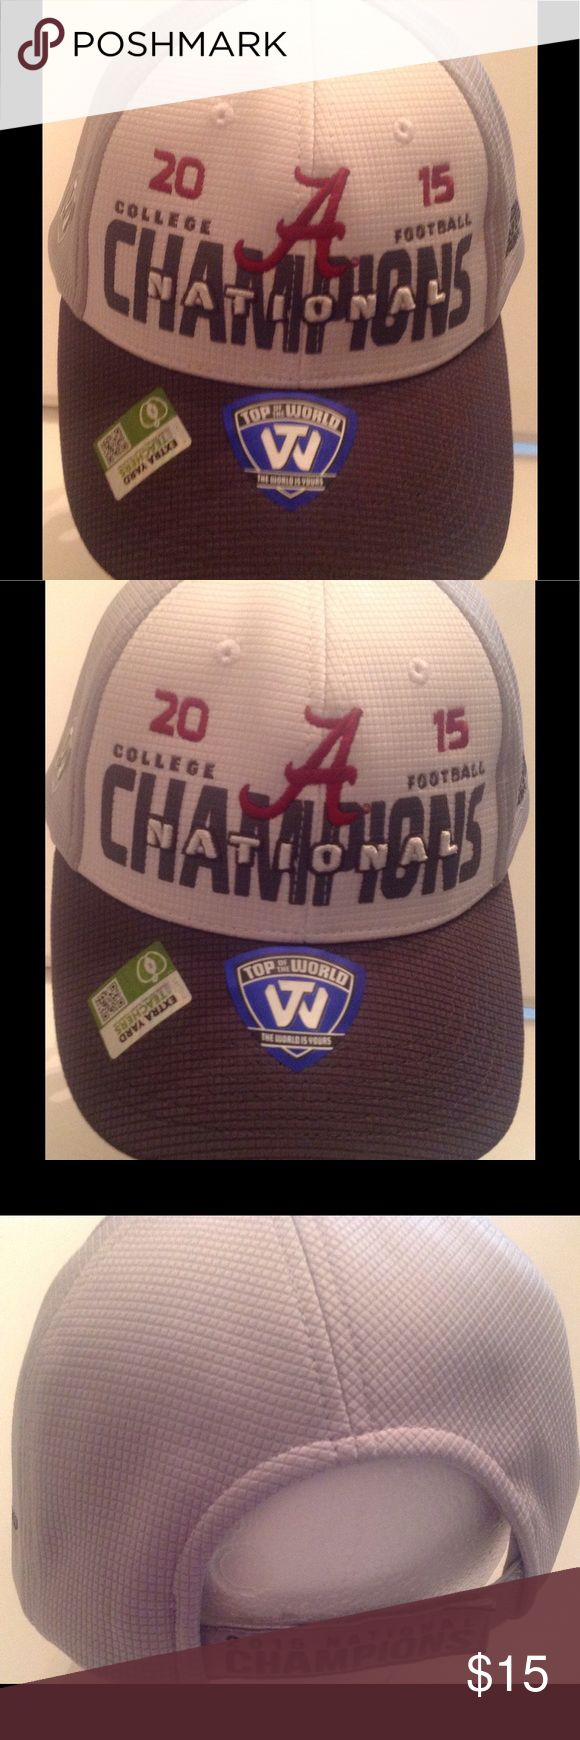 Men's Roll Tide Alabama  Championship Hat NWT Alabama Crimson college football championship hat 2015. Game played in Arizona. Accessories Hats